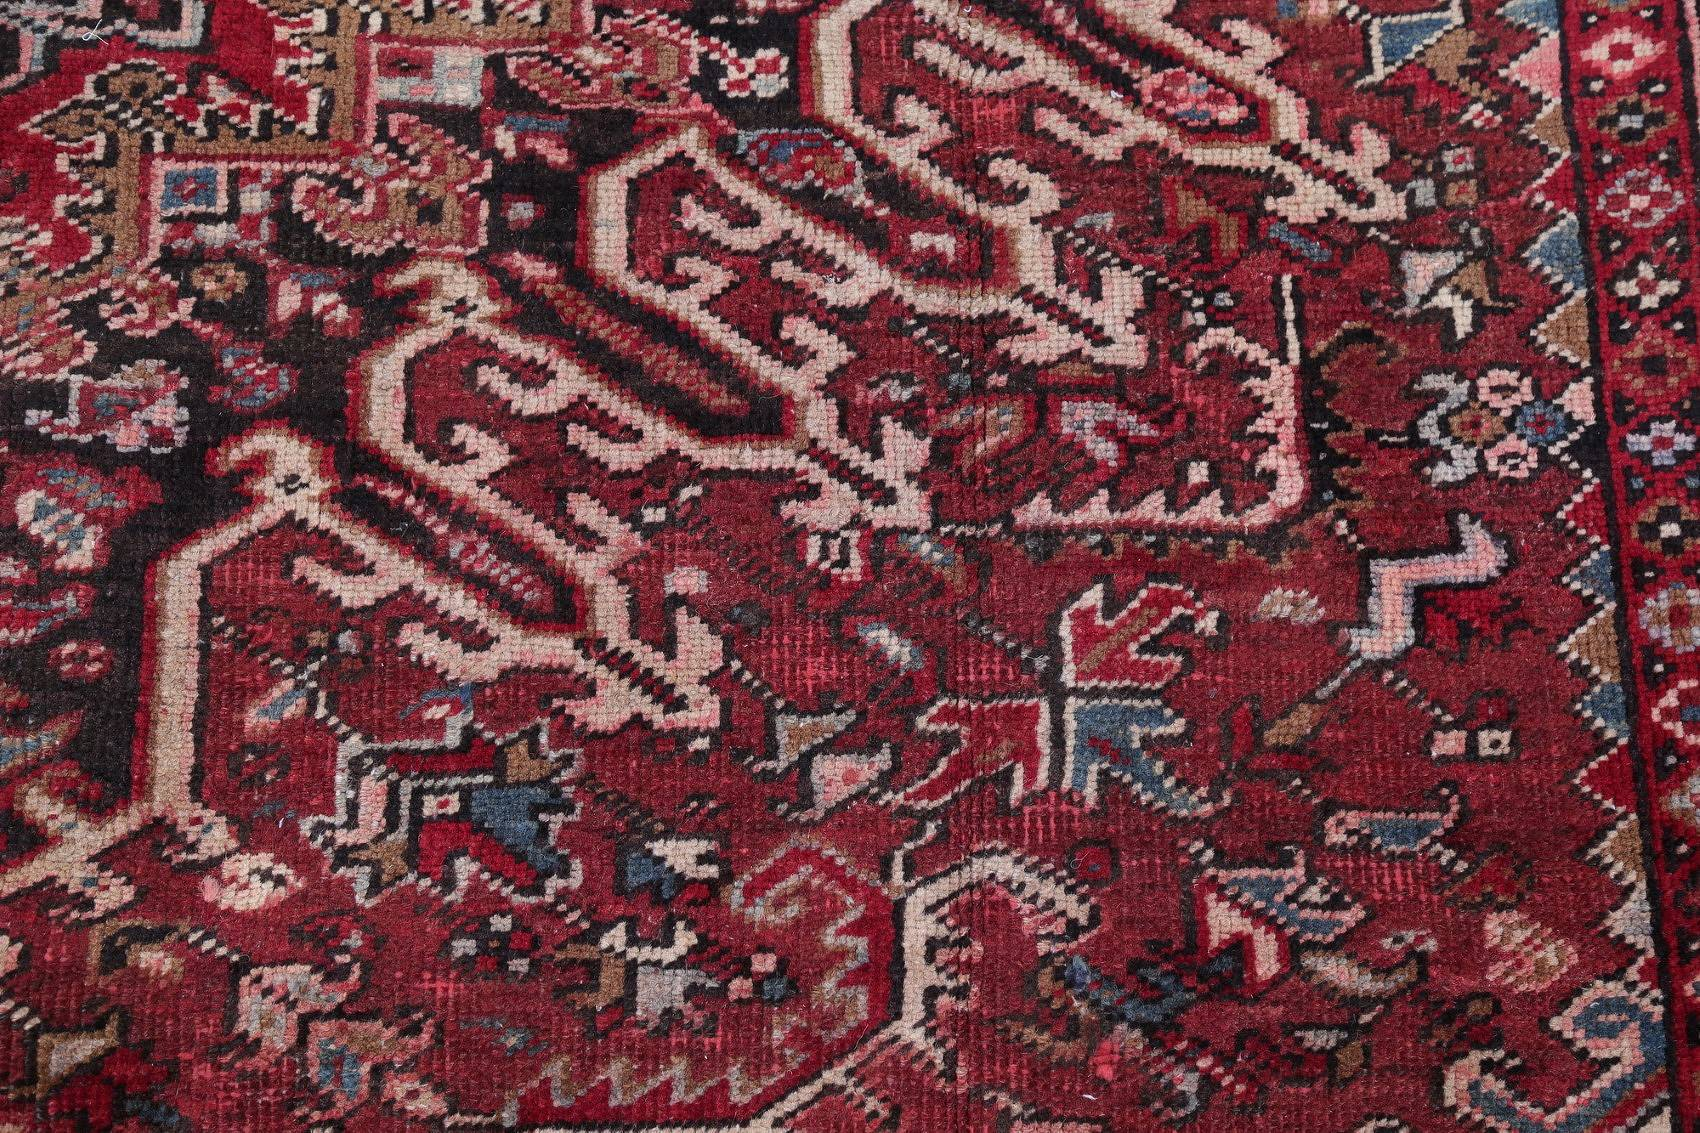 Antique Geometric Heriz Persian Hand-Knotted 8x11 Red Area Rug Wool